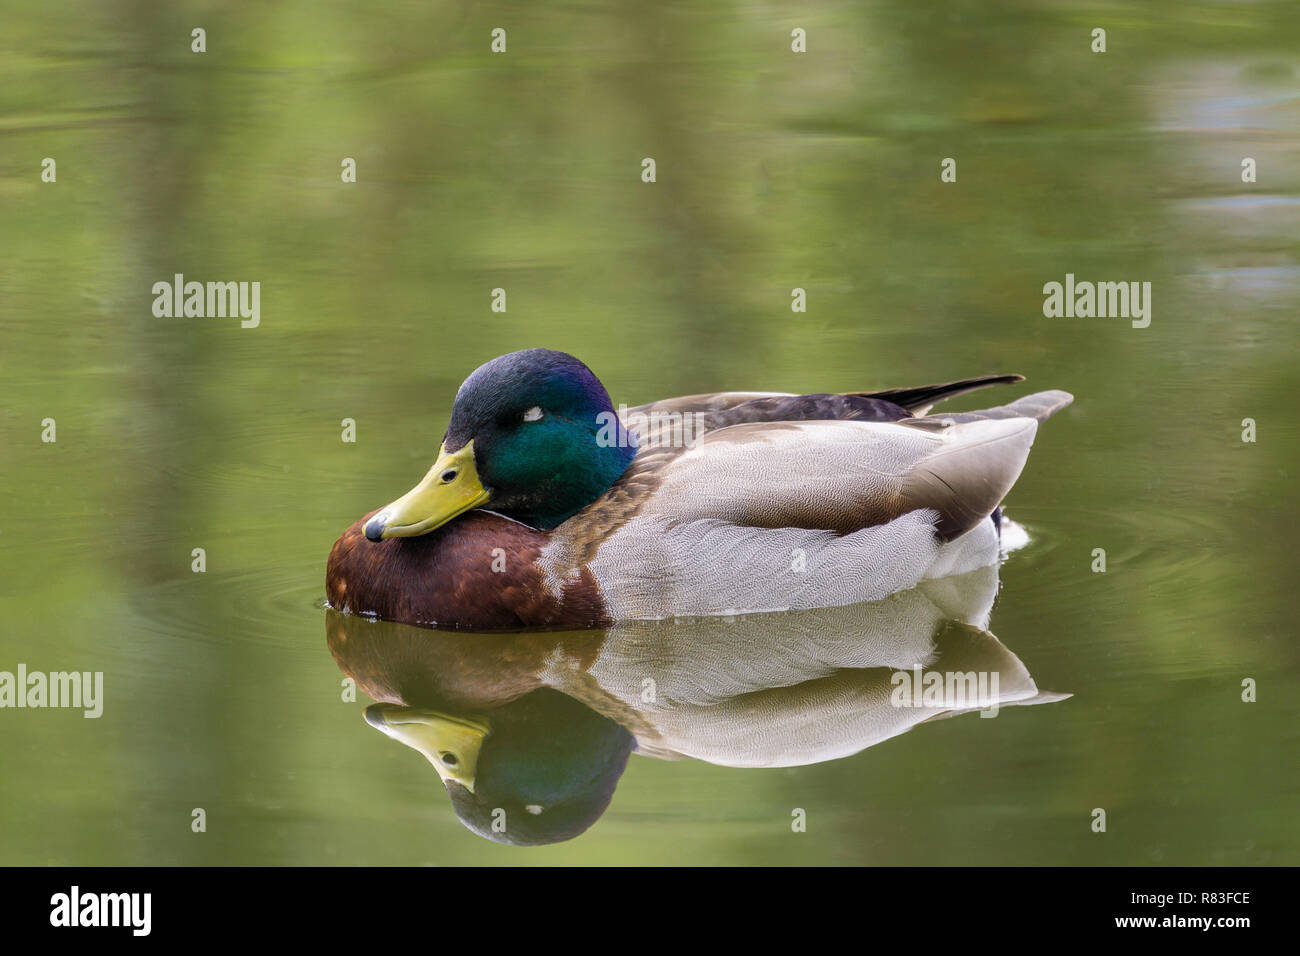 Close-up of a Mallard Duck (Anas platyrhynchos) at the Lake. - Stock Image